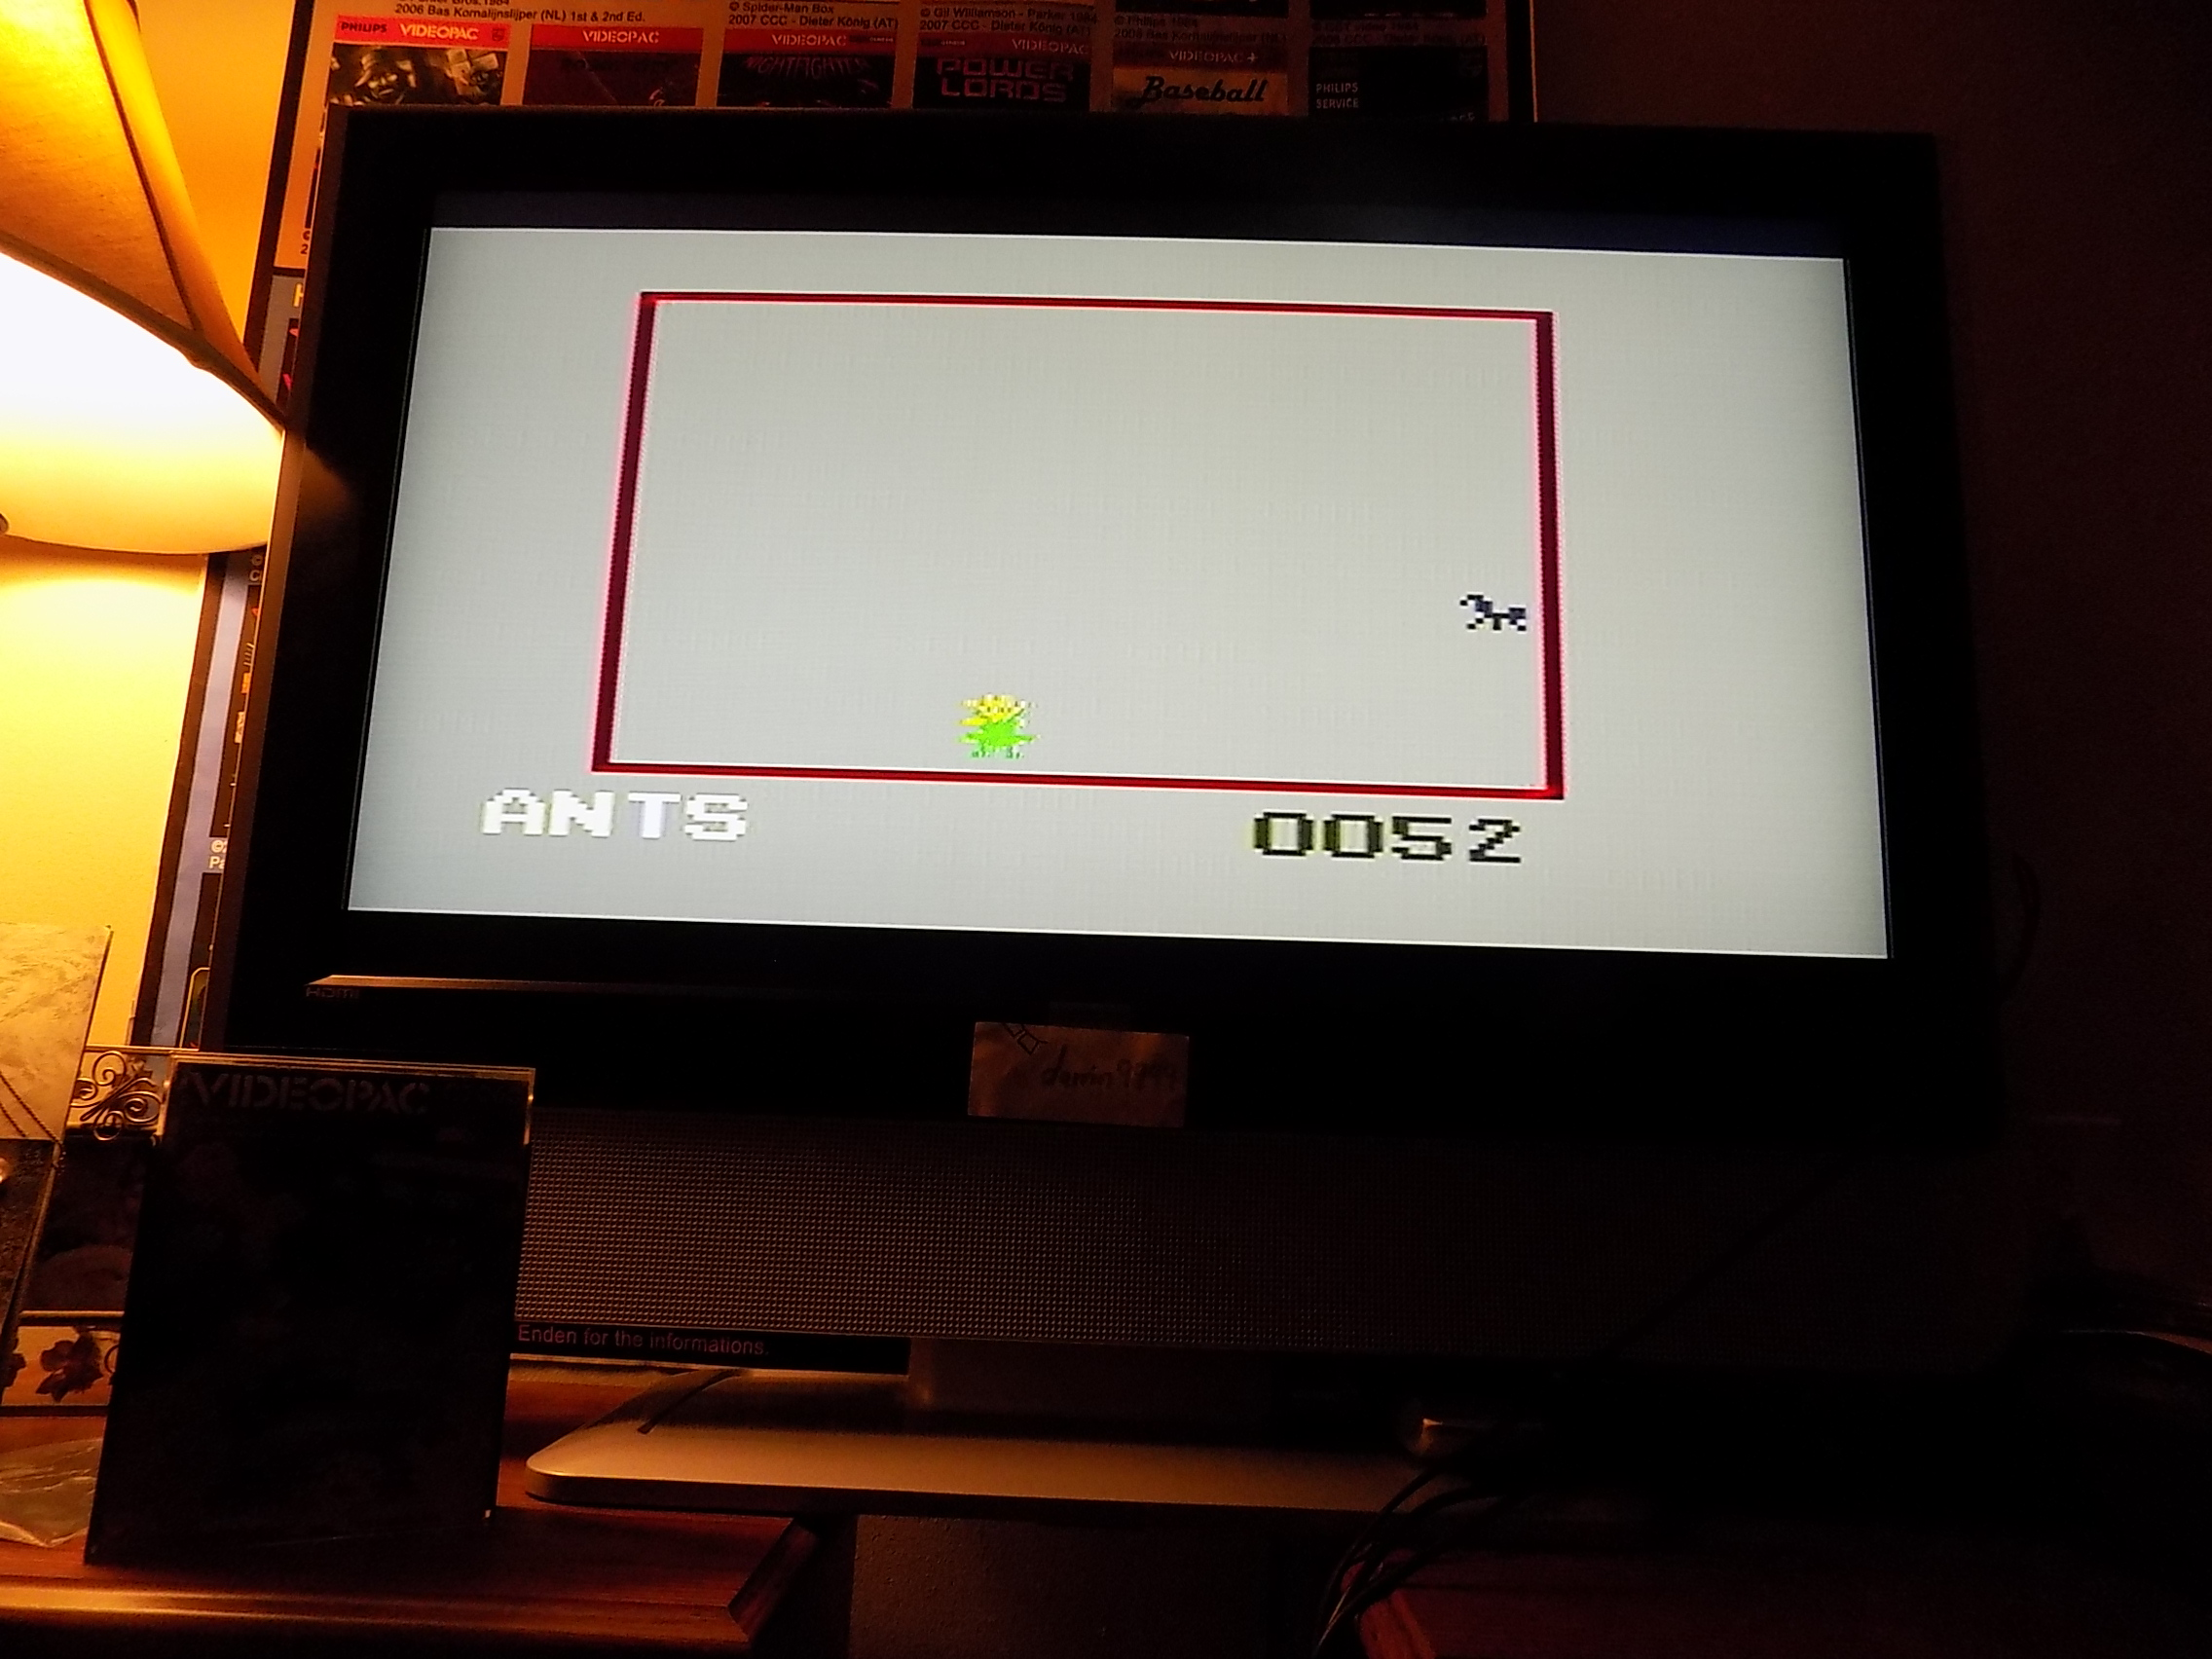 darrin9999: Ants (Odyssey 2 / Videopac) 52 points on 2018-03-12 10:36:46